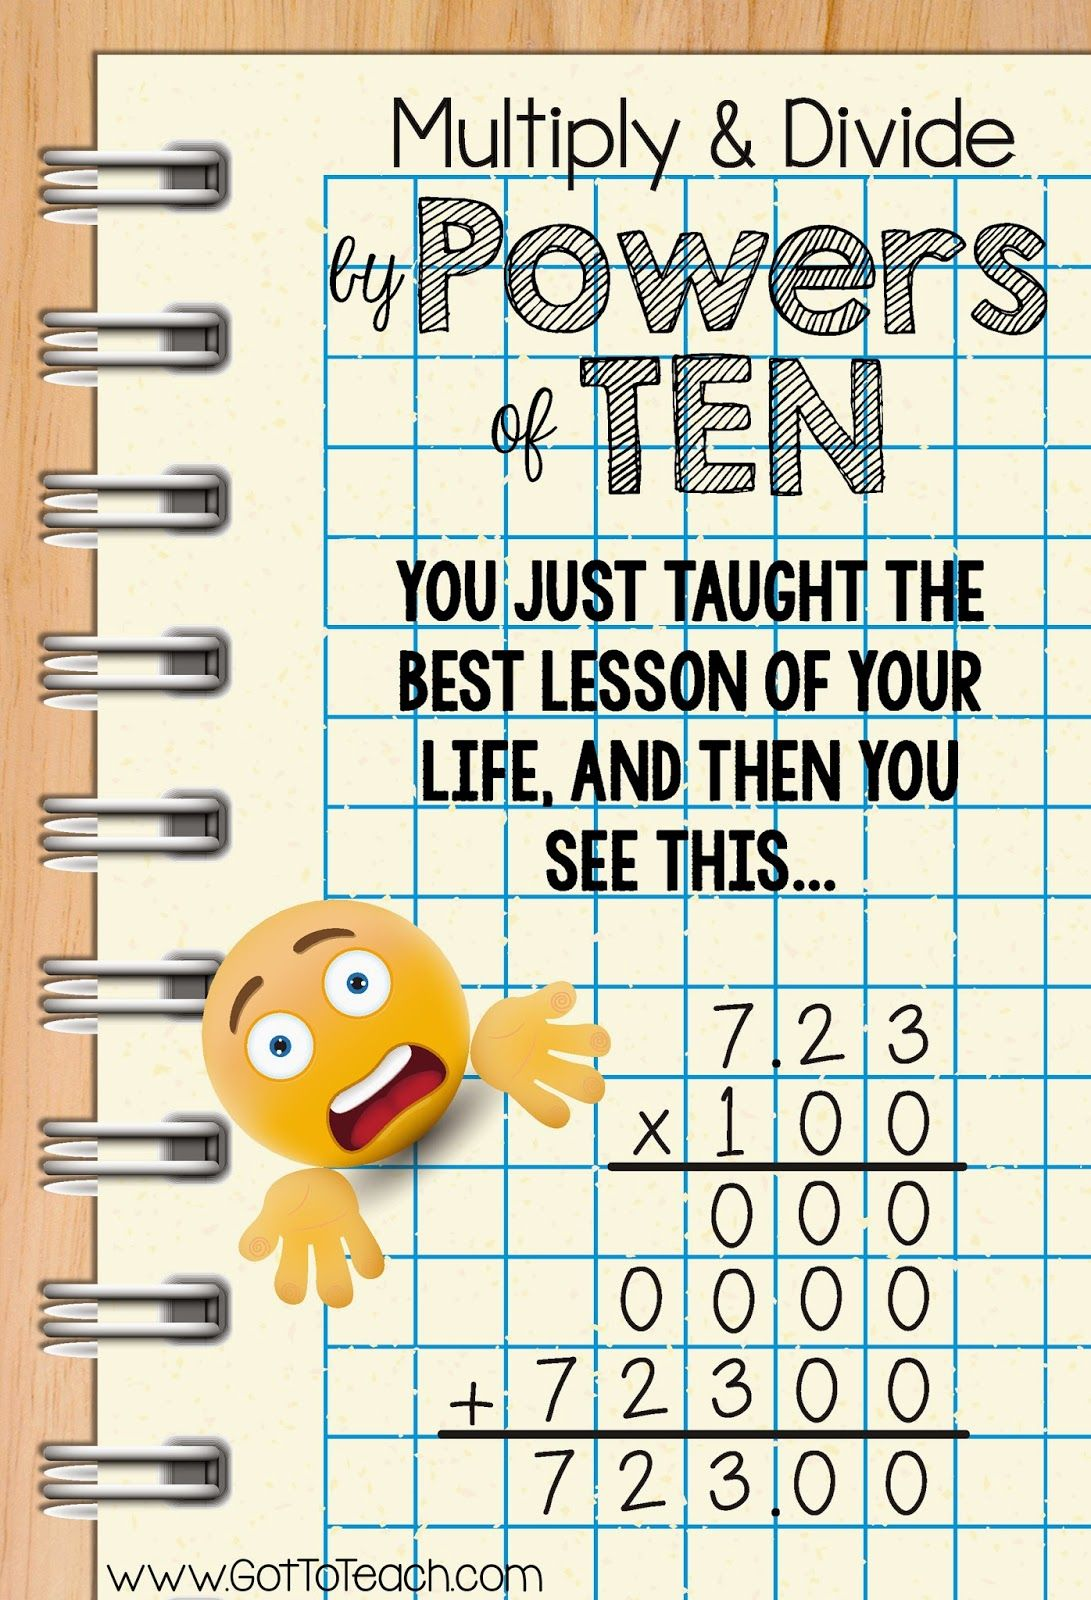 Multiply and Divide by Powers of Ten!